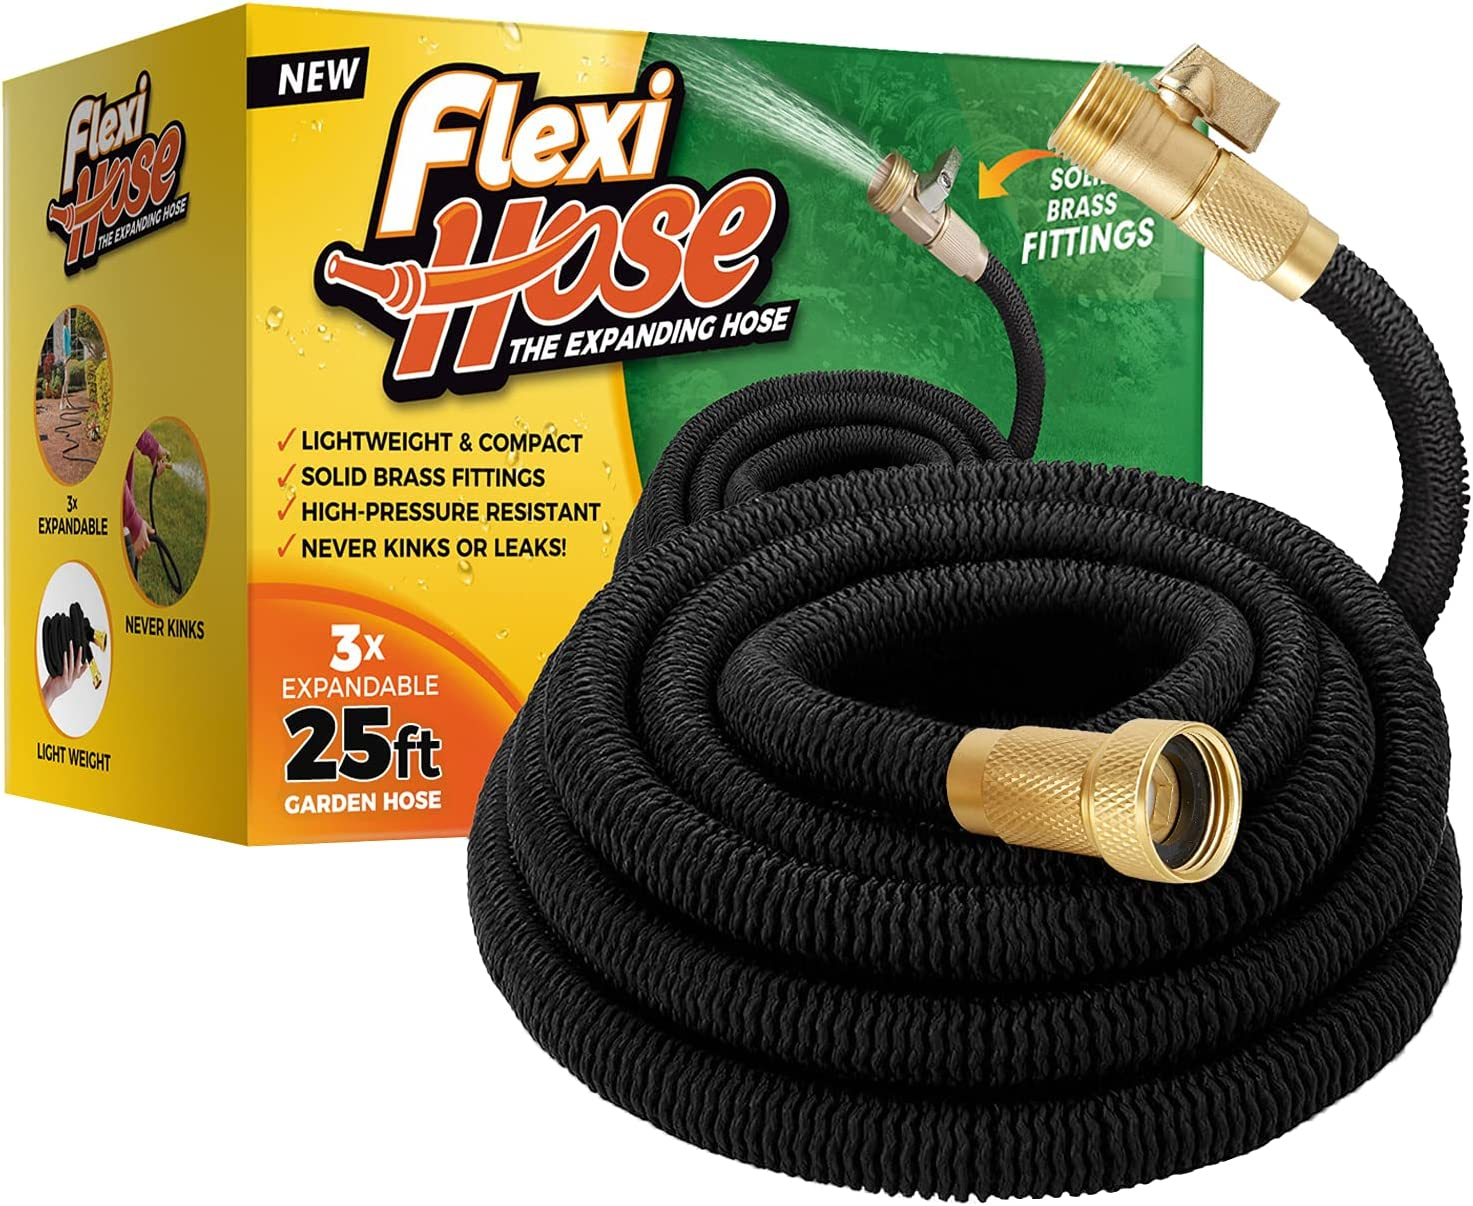 Flexi Hose Lightweight Expandable Garden Hose, No-Kink Flexibility, 3/4 Inch Solid Brass Fittings and Double Latex Core (25 FT, Black)